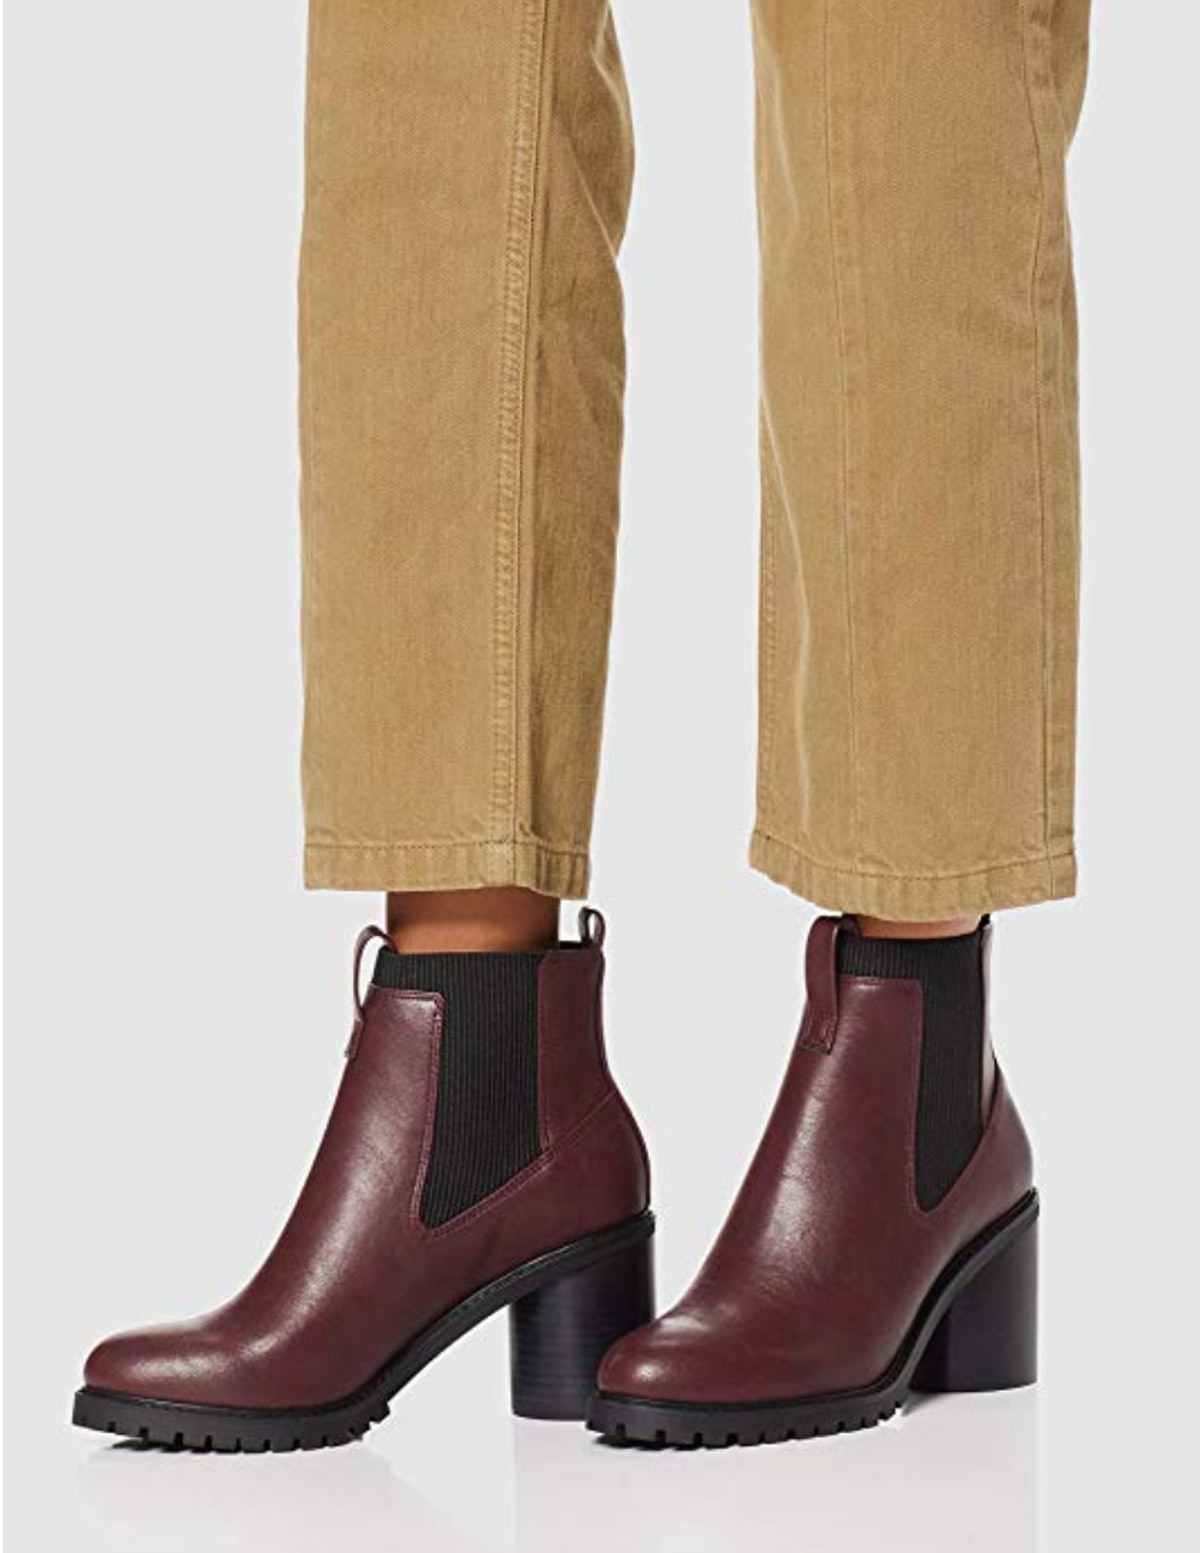 find. Chunky Sole, Women's Chelsea Heeled Boots